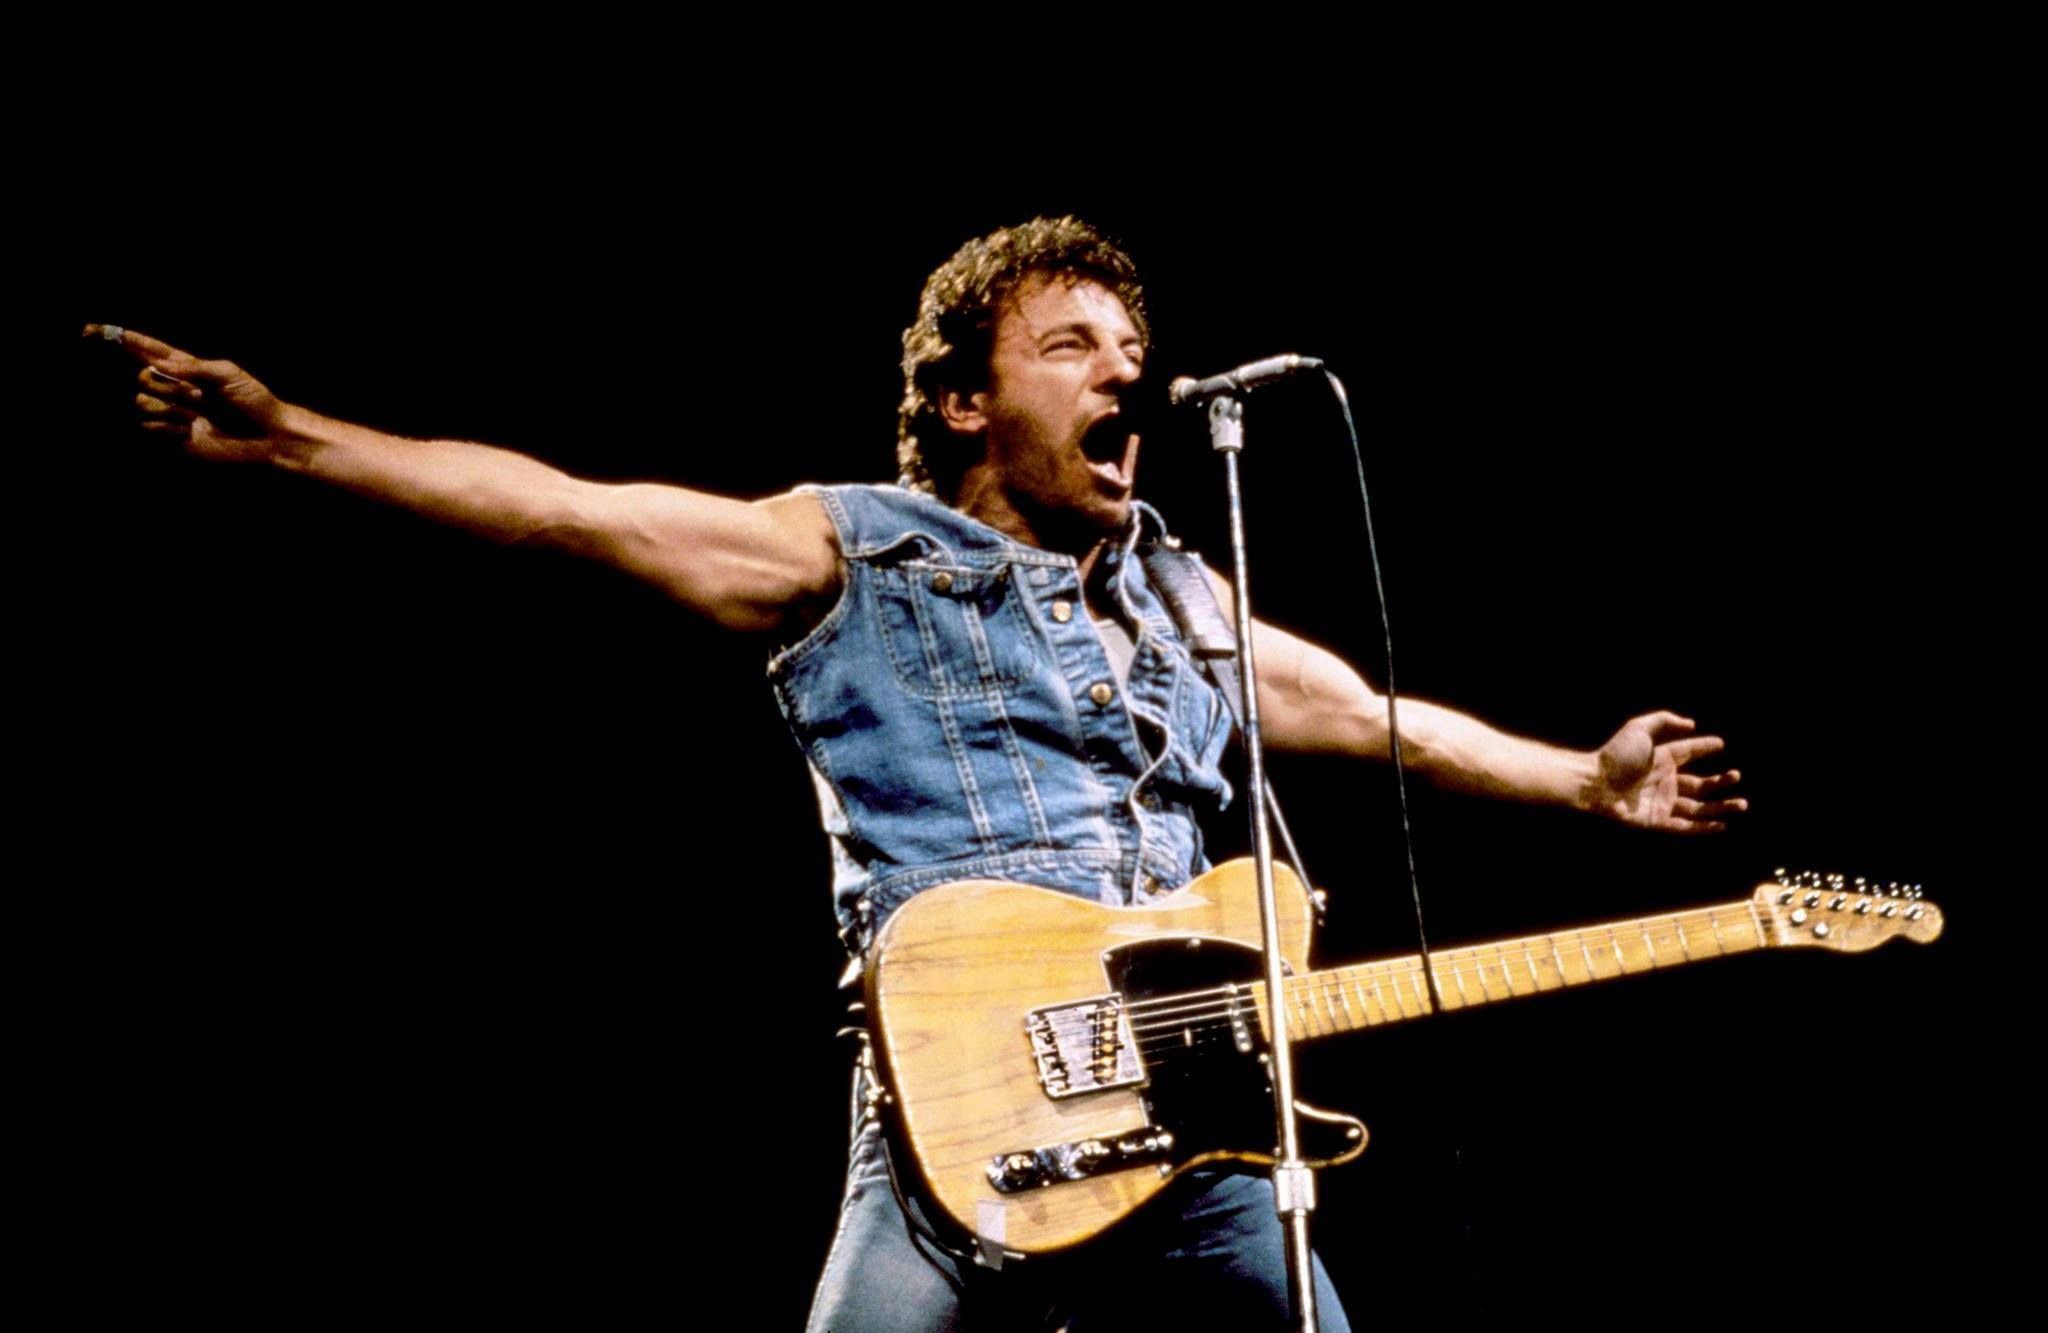 Pin by Rocket Inc. on Amazing Bruce Springsteen Photos or Art | Bruce  springsteen, Music photography, The boss bruce